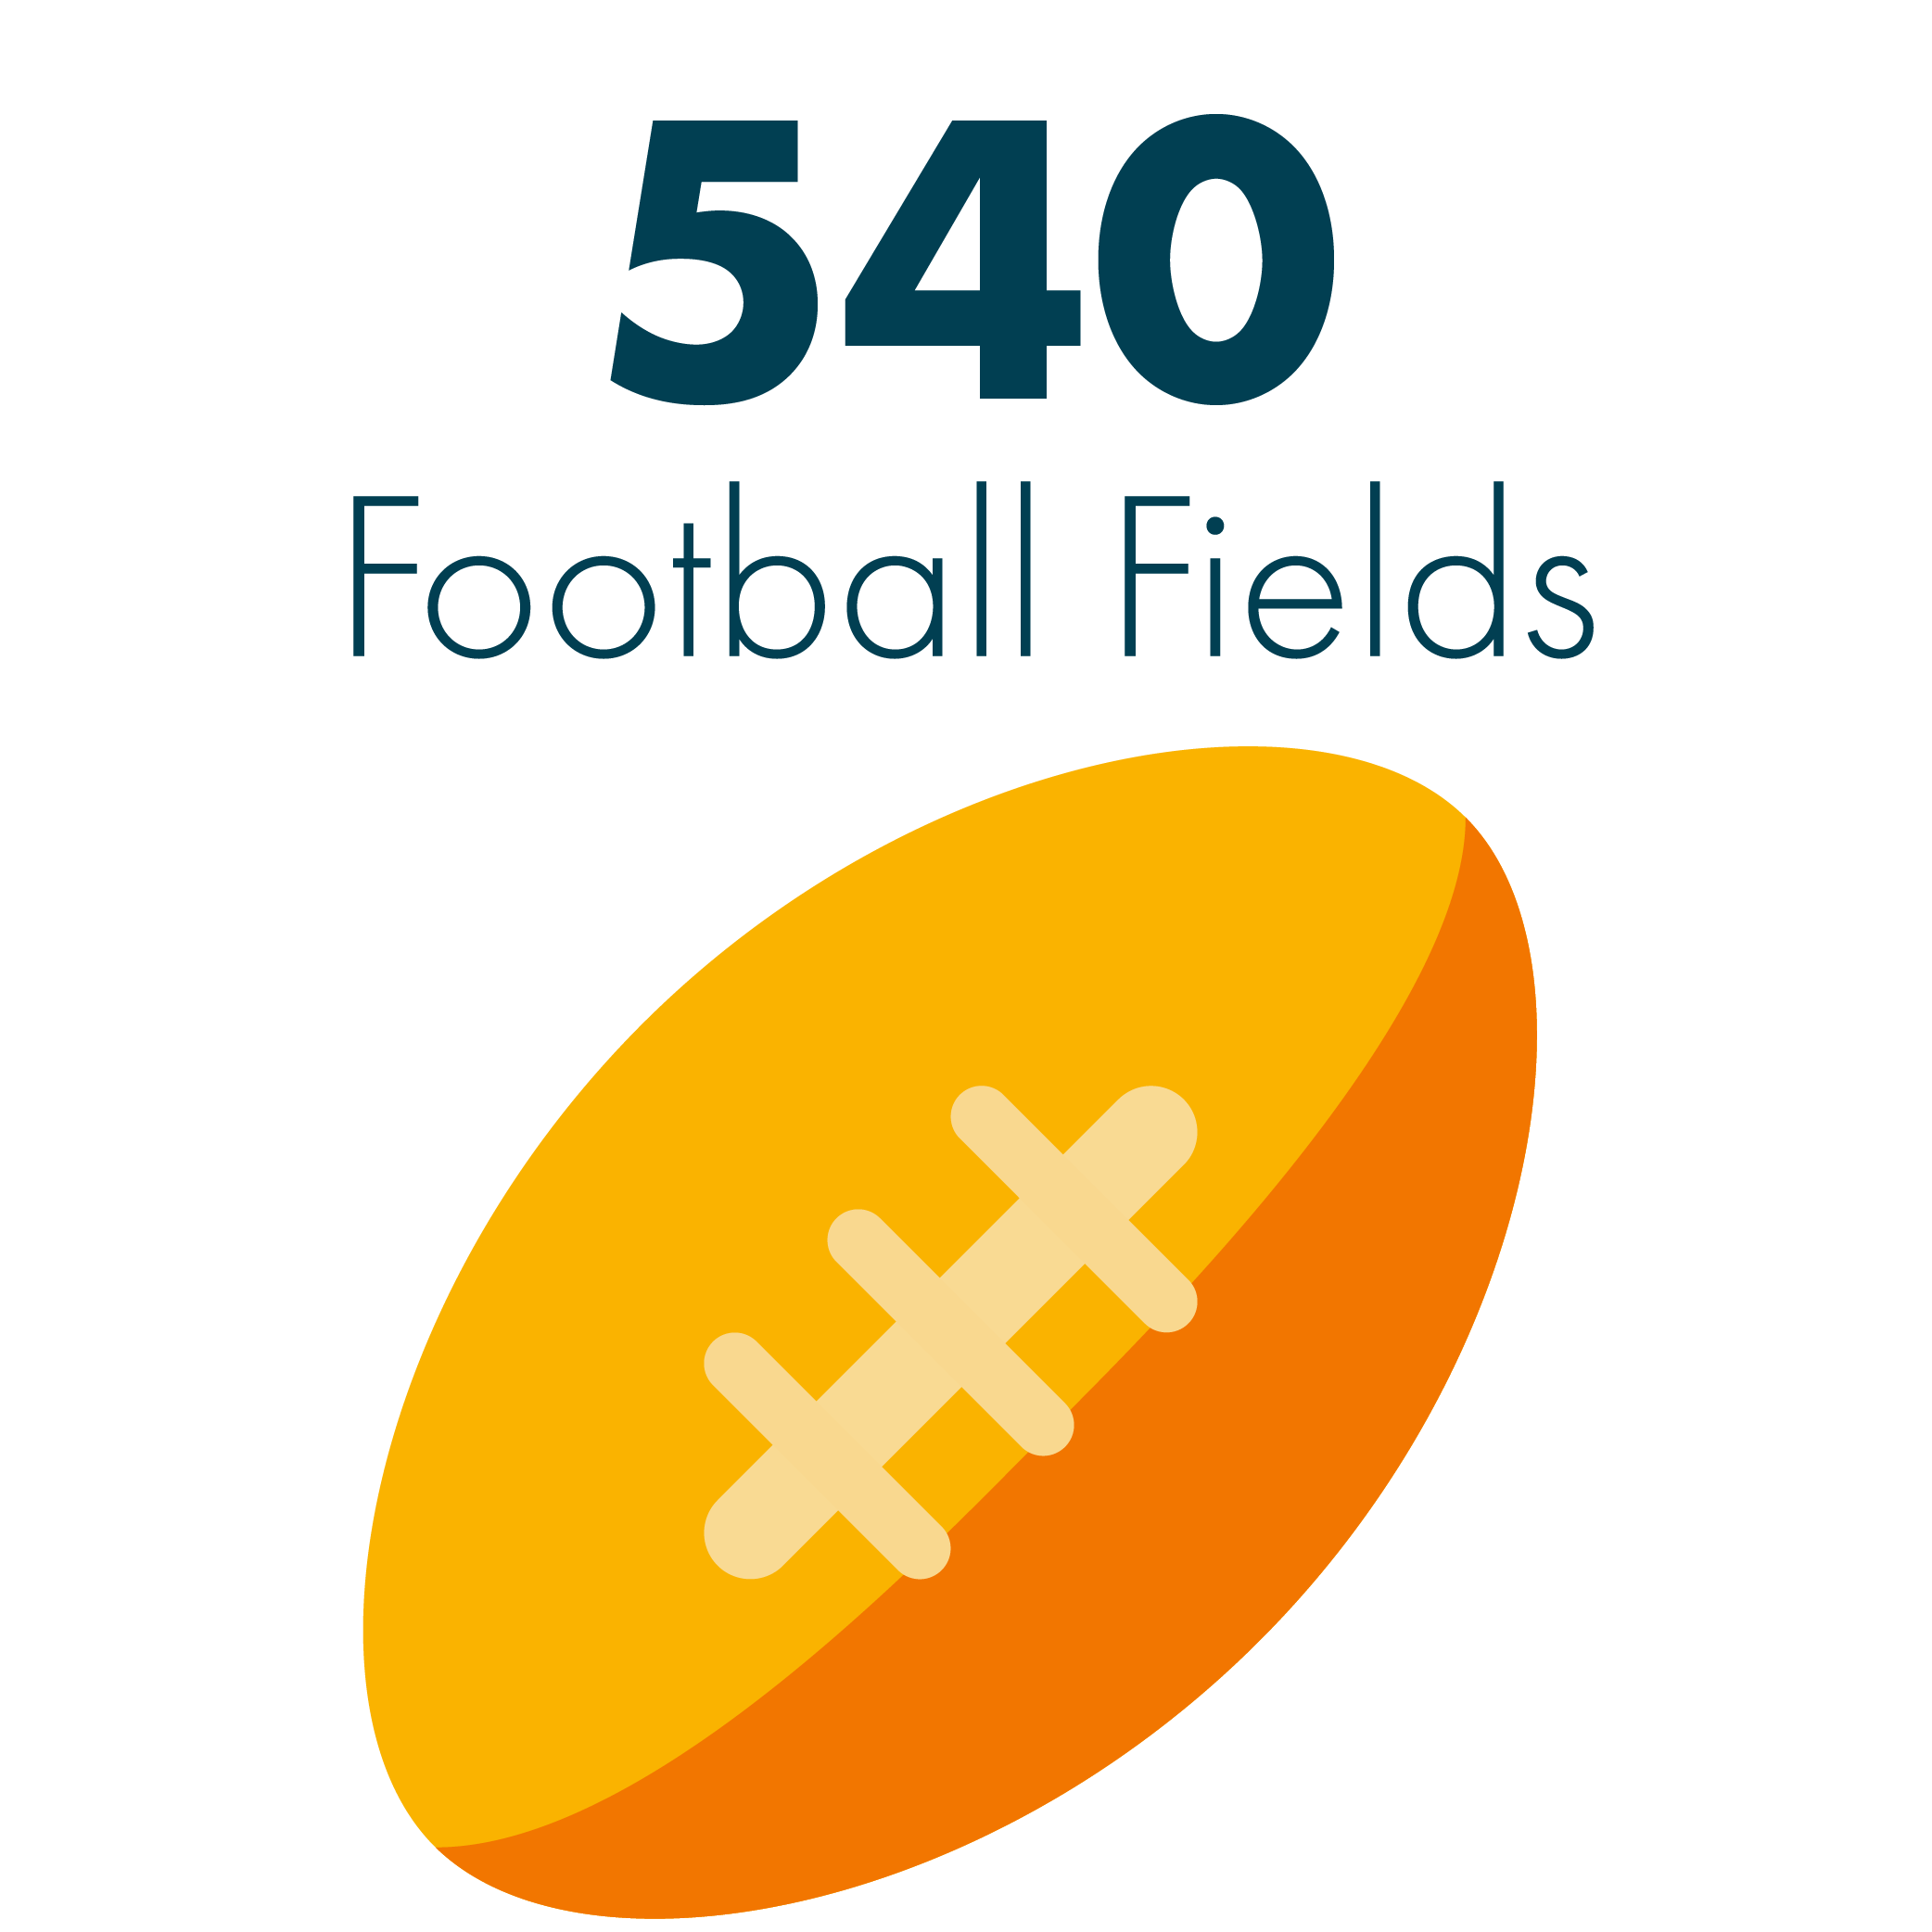 540 Football Fields